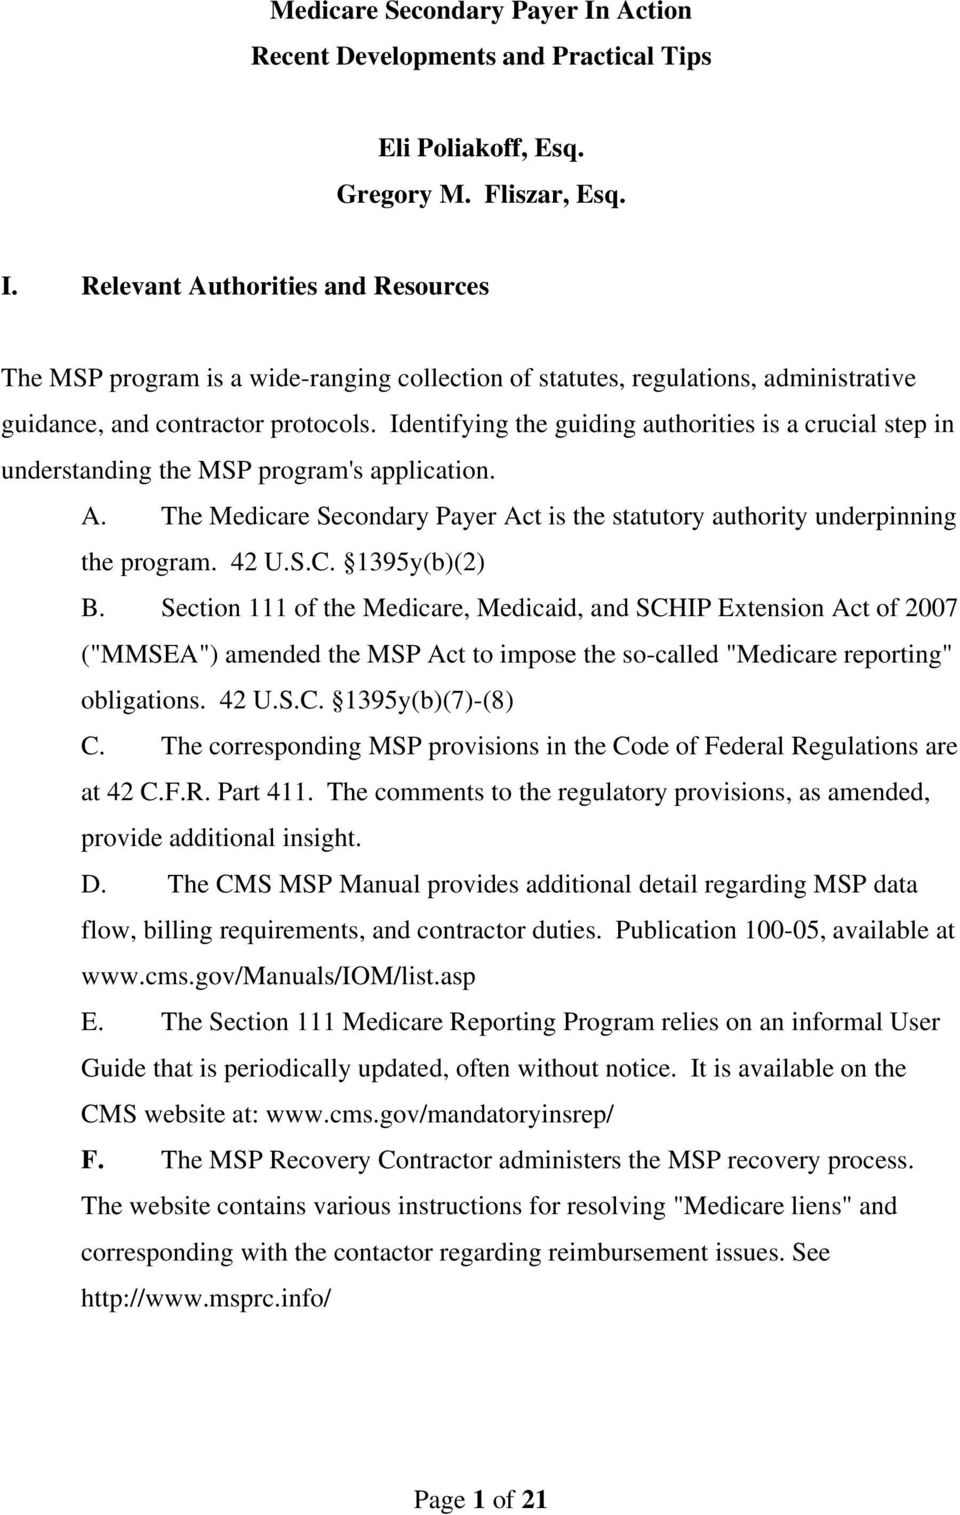 "1395y(b)(2) B. Section 111 of the Medicare, Medicaid, and SCHIP Extension Act of 2007 (""MMSEA"") amended the MSP Act to impose the so-called ""Medicare reporting"" obligations. 42 U.S.C. 1395y(b)(7)-(8) C."